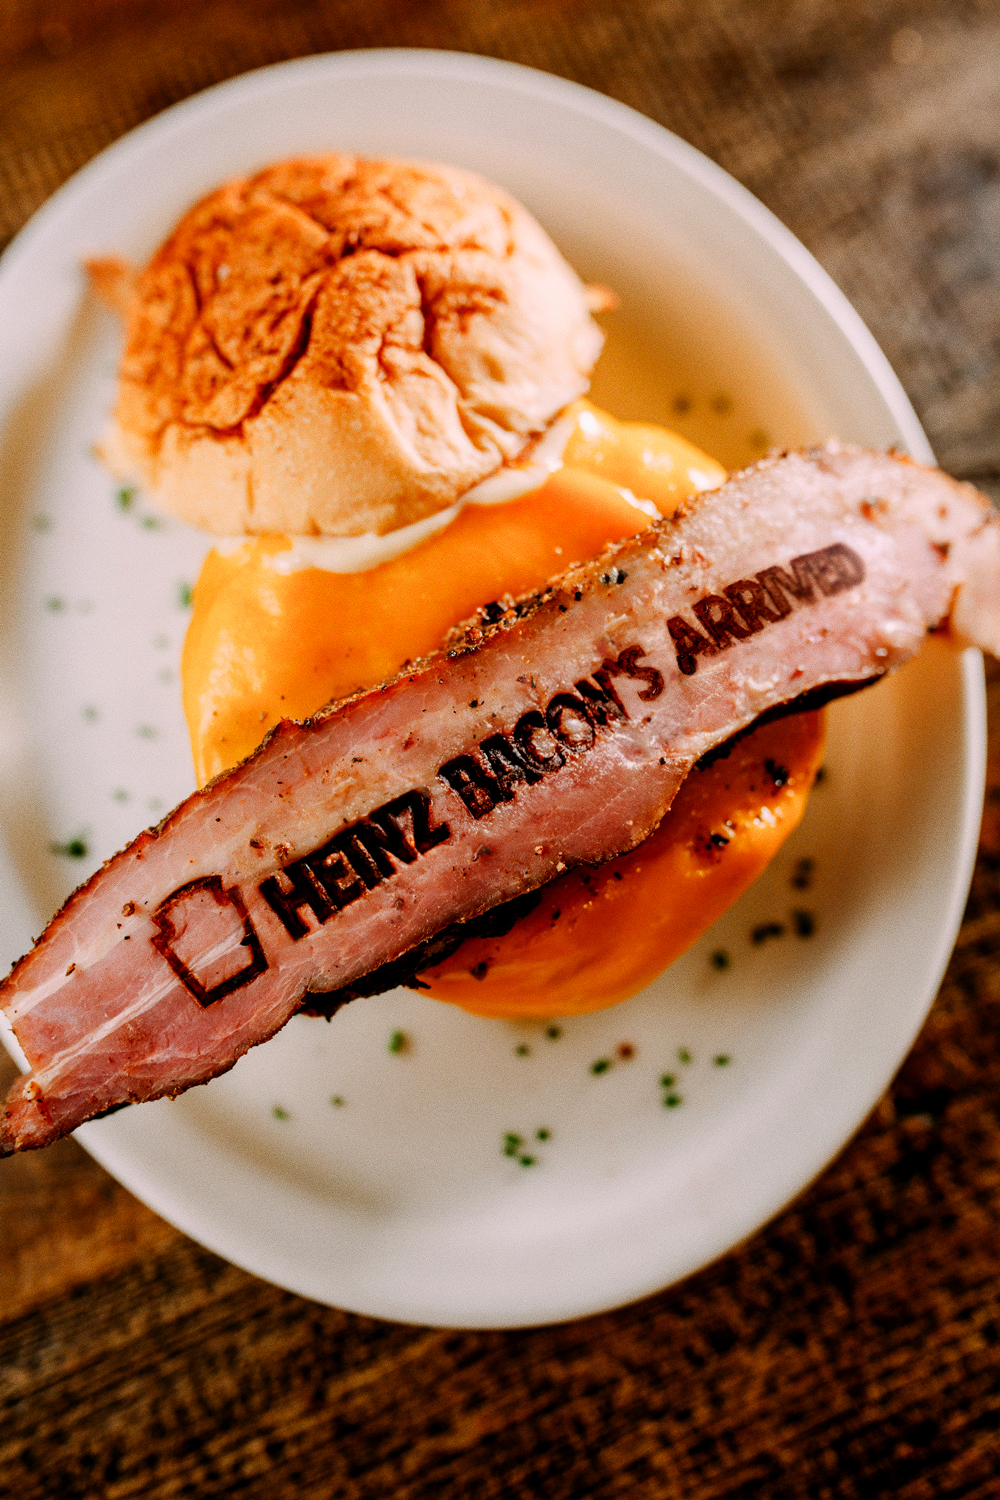 Heinz's Bacon Ketchup Launch in Brazil May Be The Tastiest Campaign Ever